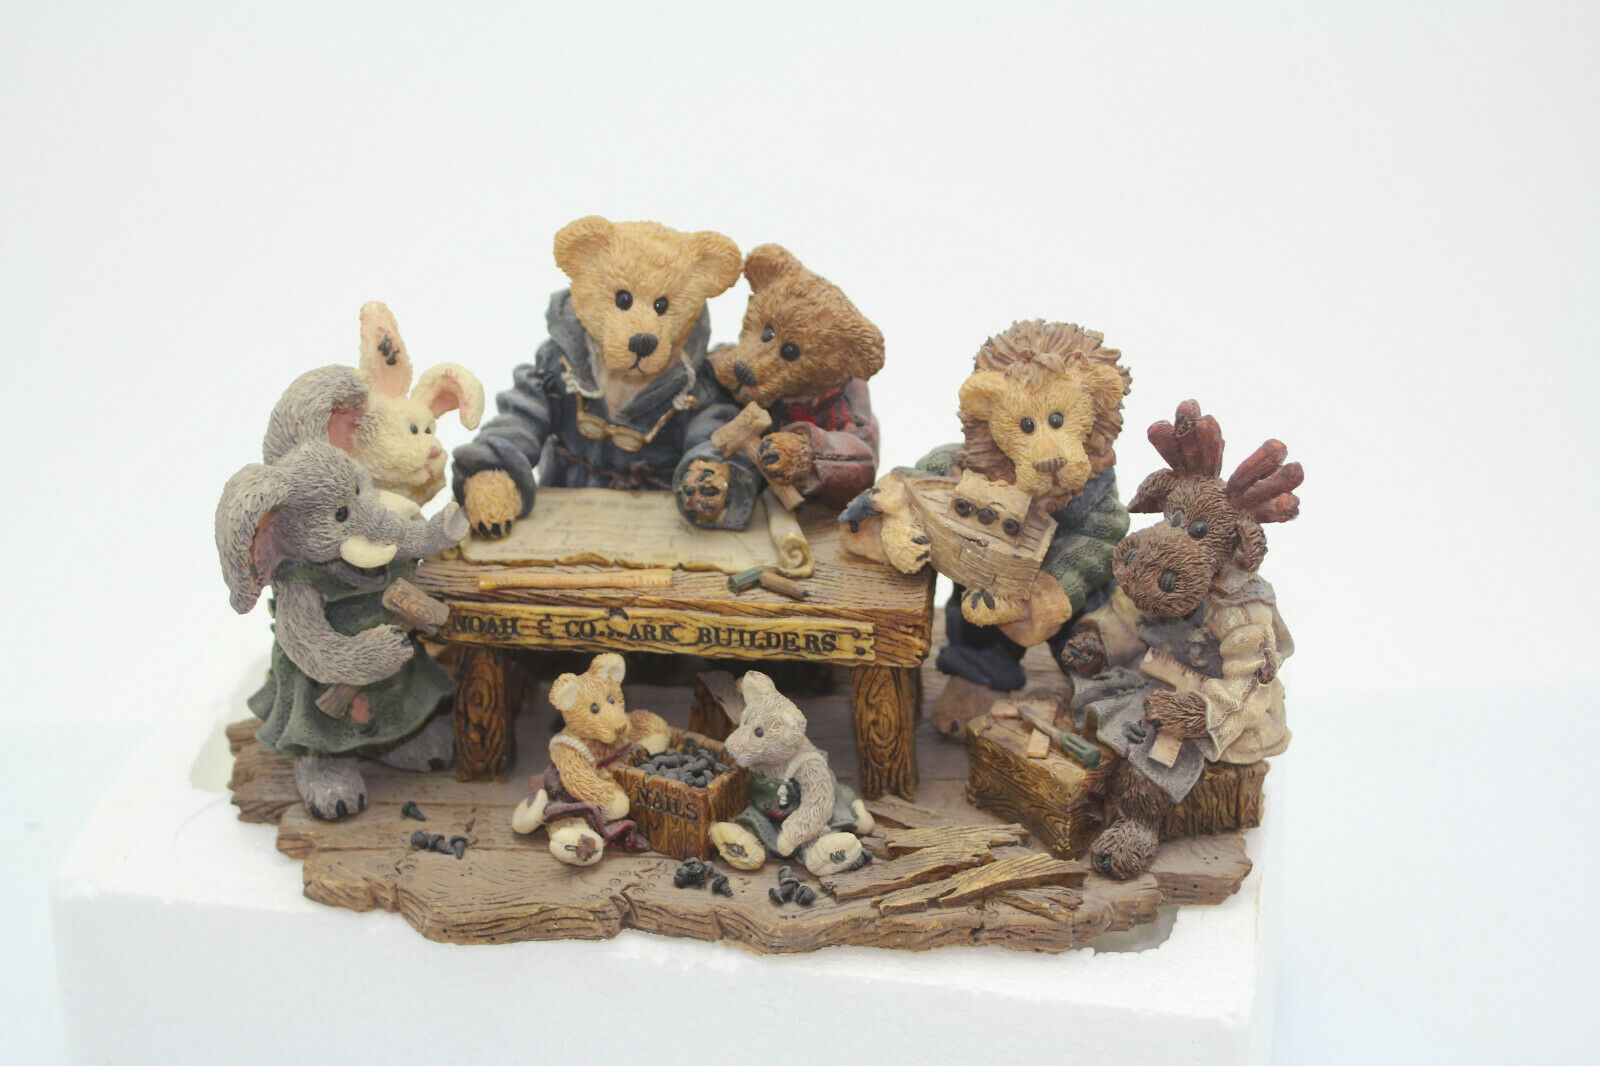 The Boyds Collection Noah & Co. Ark Builders Limited Edition 1996